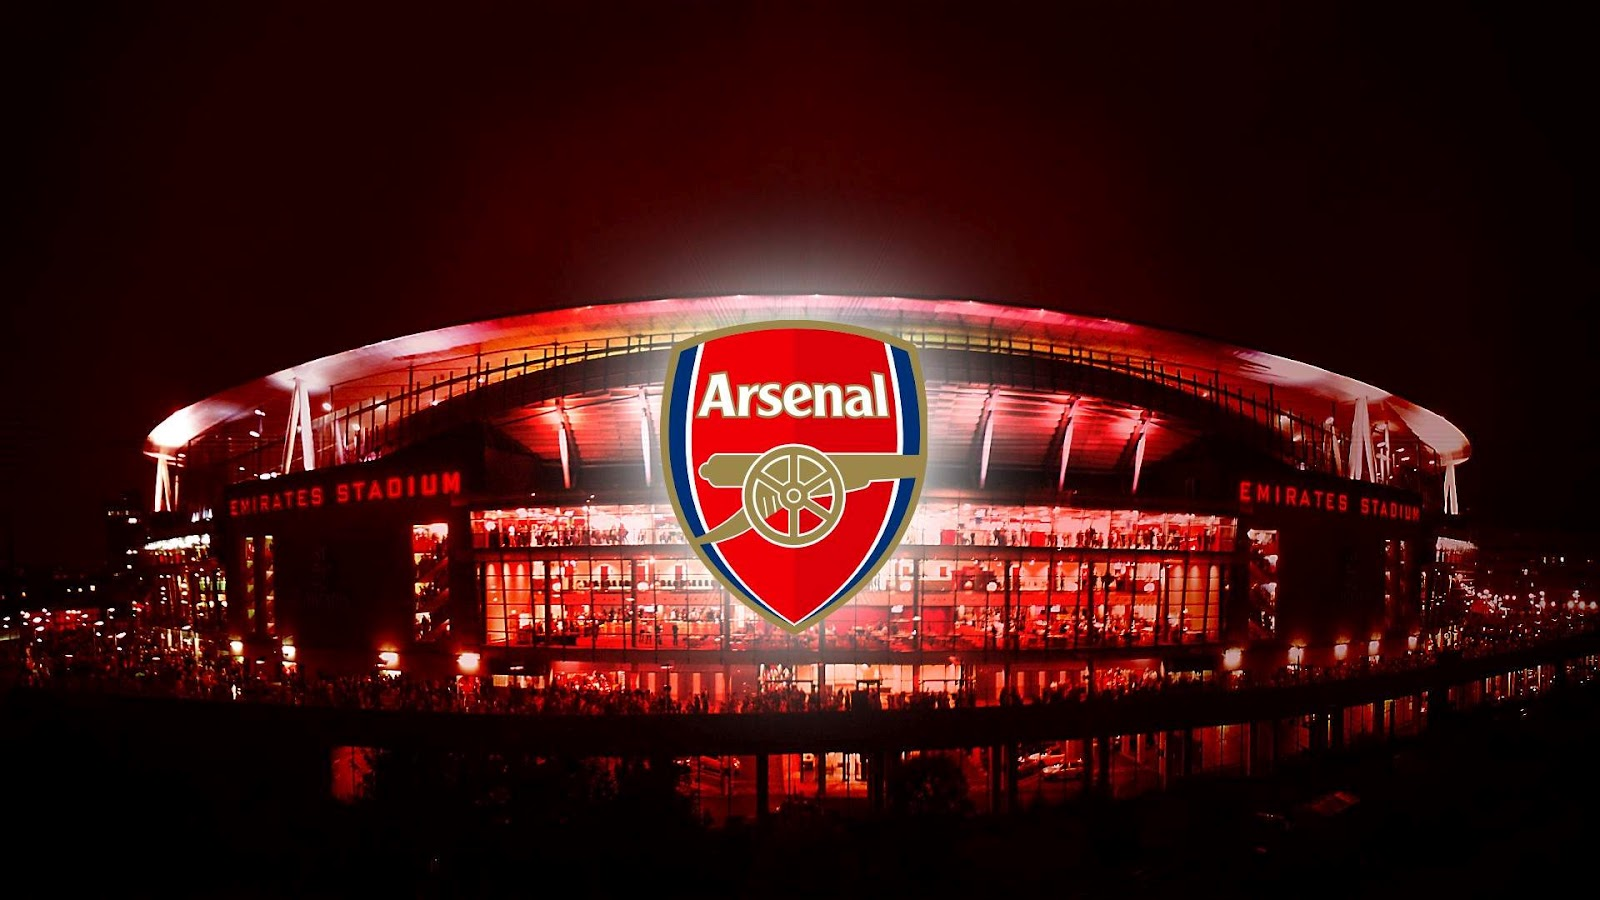 Arsenal HD Wallpapers for Desktop iPhone iPad and Android 1600x900